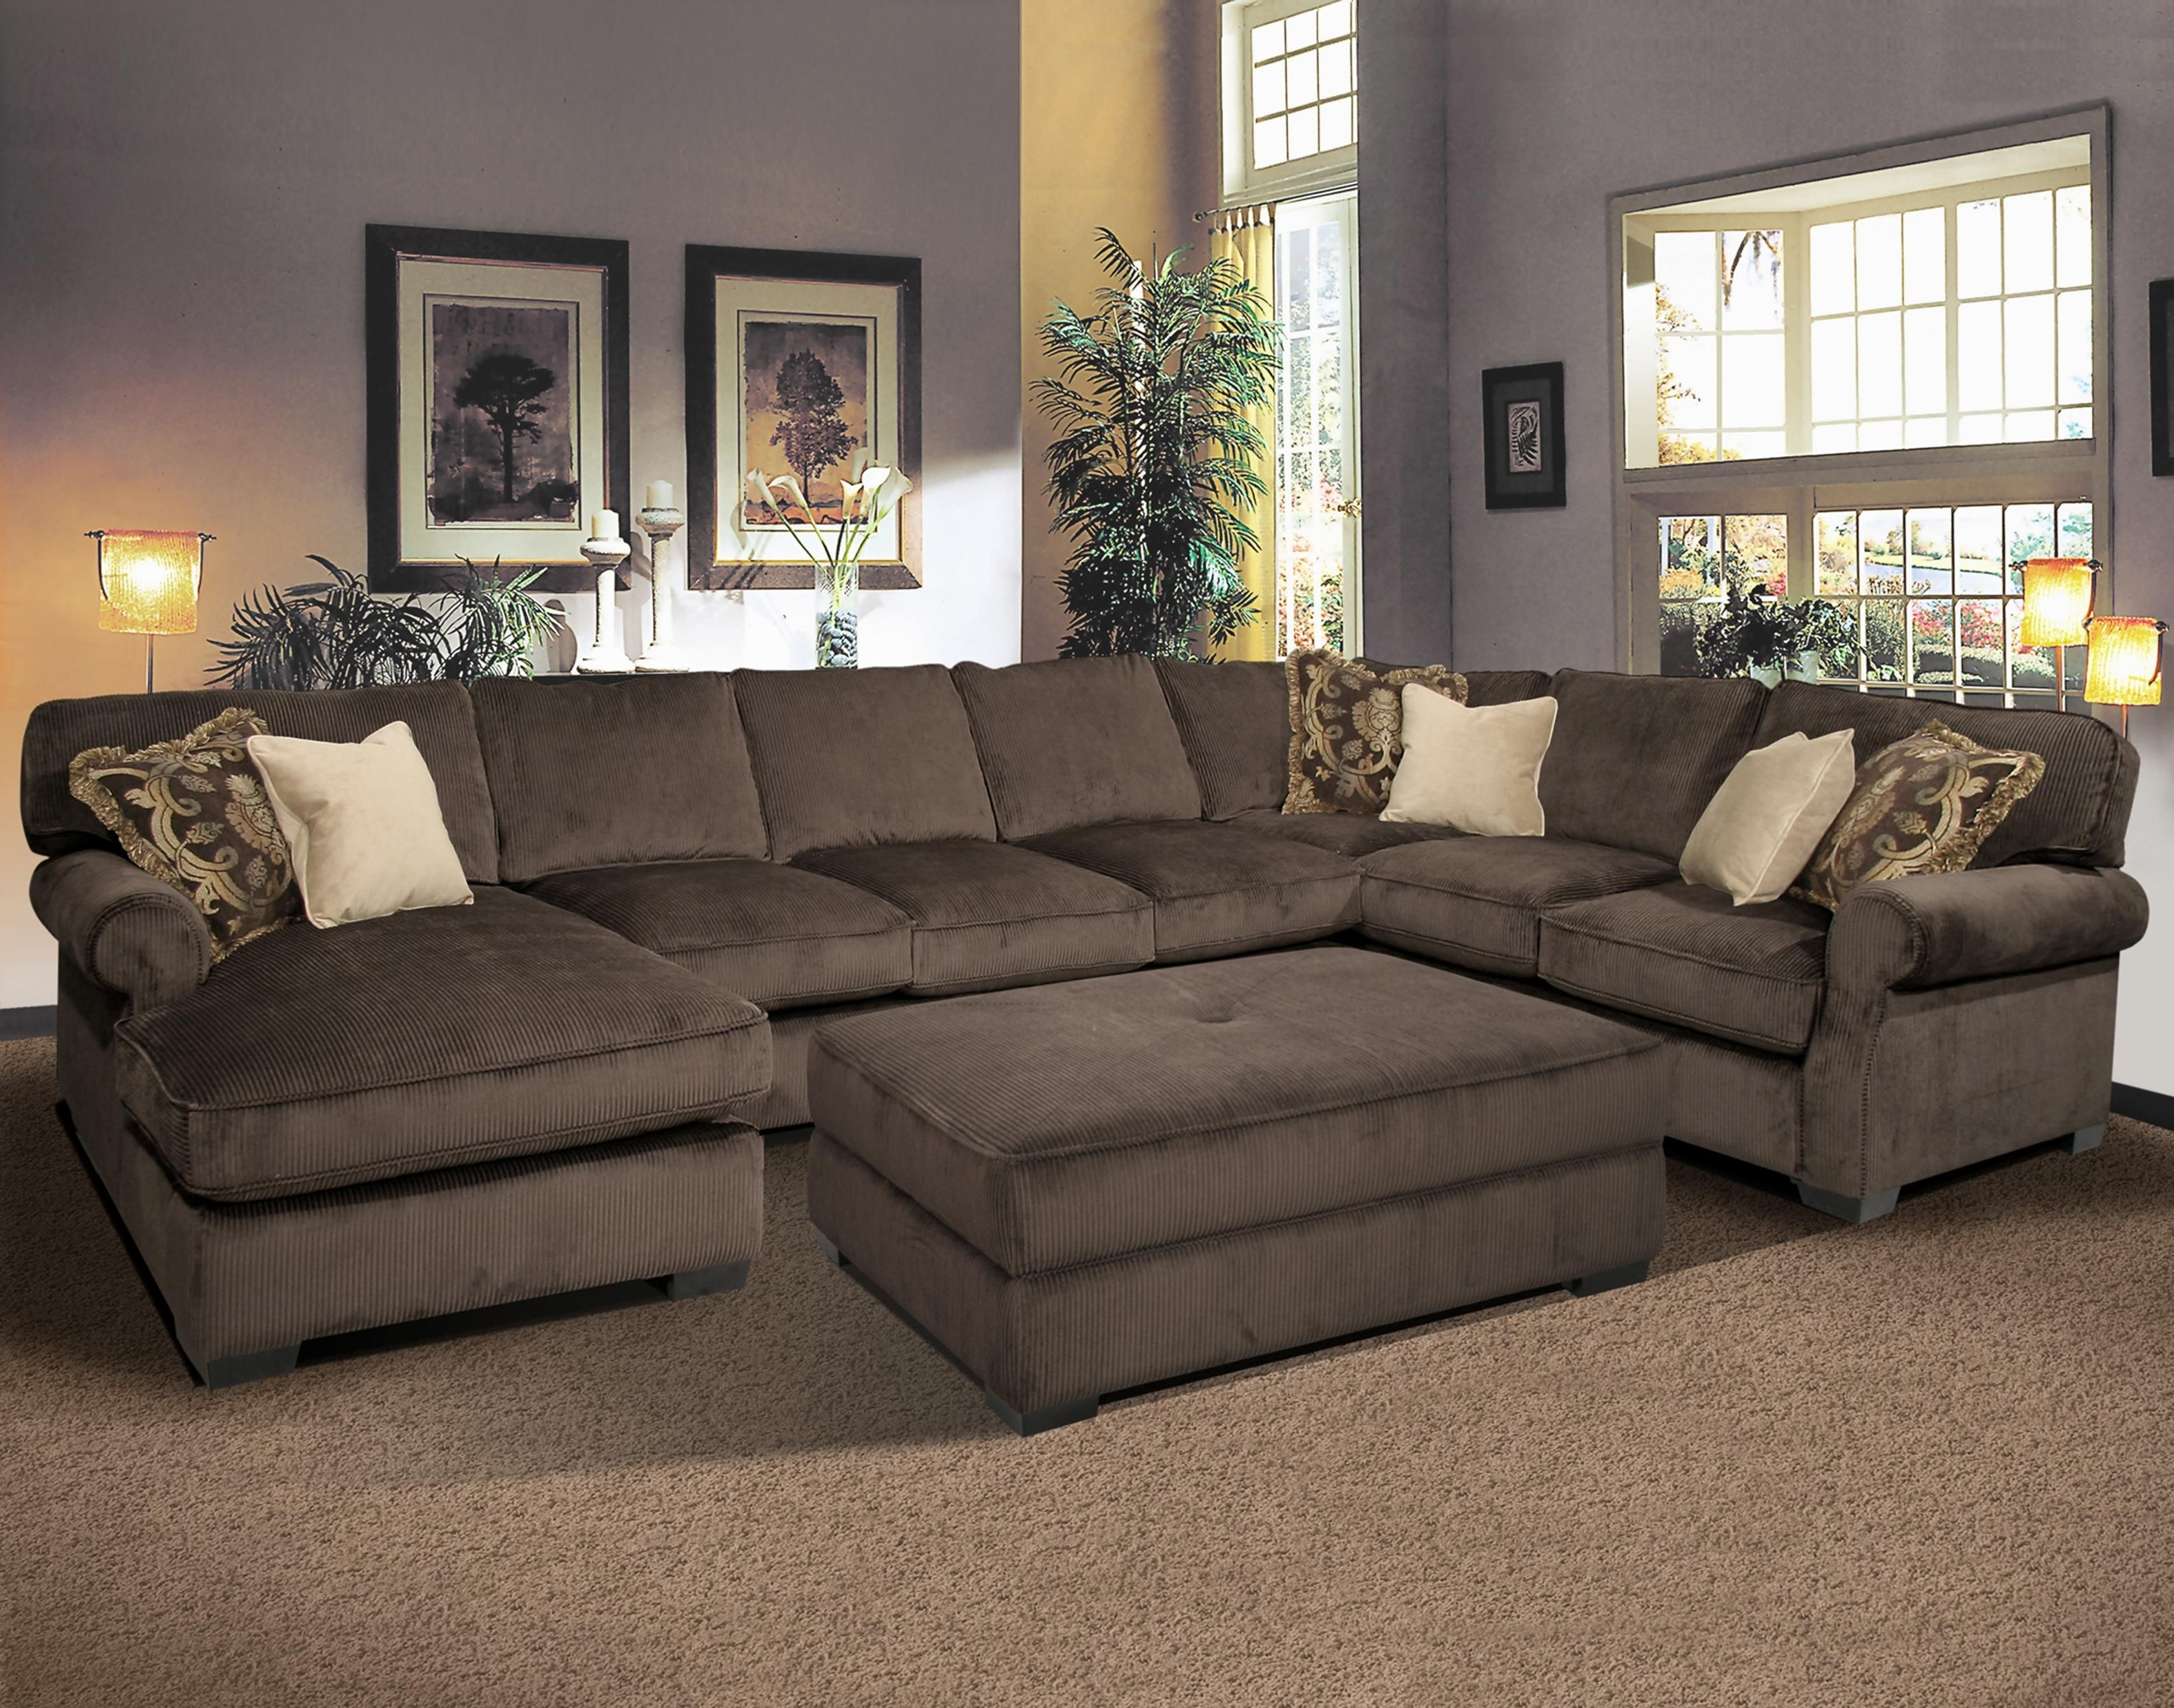 Famous Big And Comfy Grand Island Large, 7 Seat Sectional Sofa With Right With Eco Friendly Sectional Sofas (View 6 of 20)